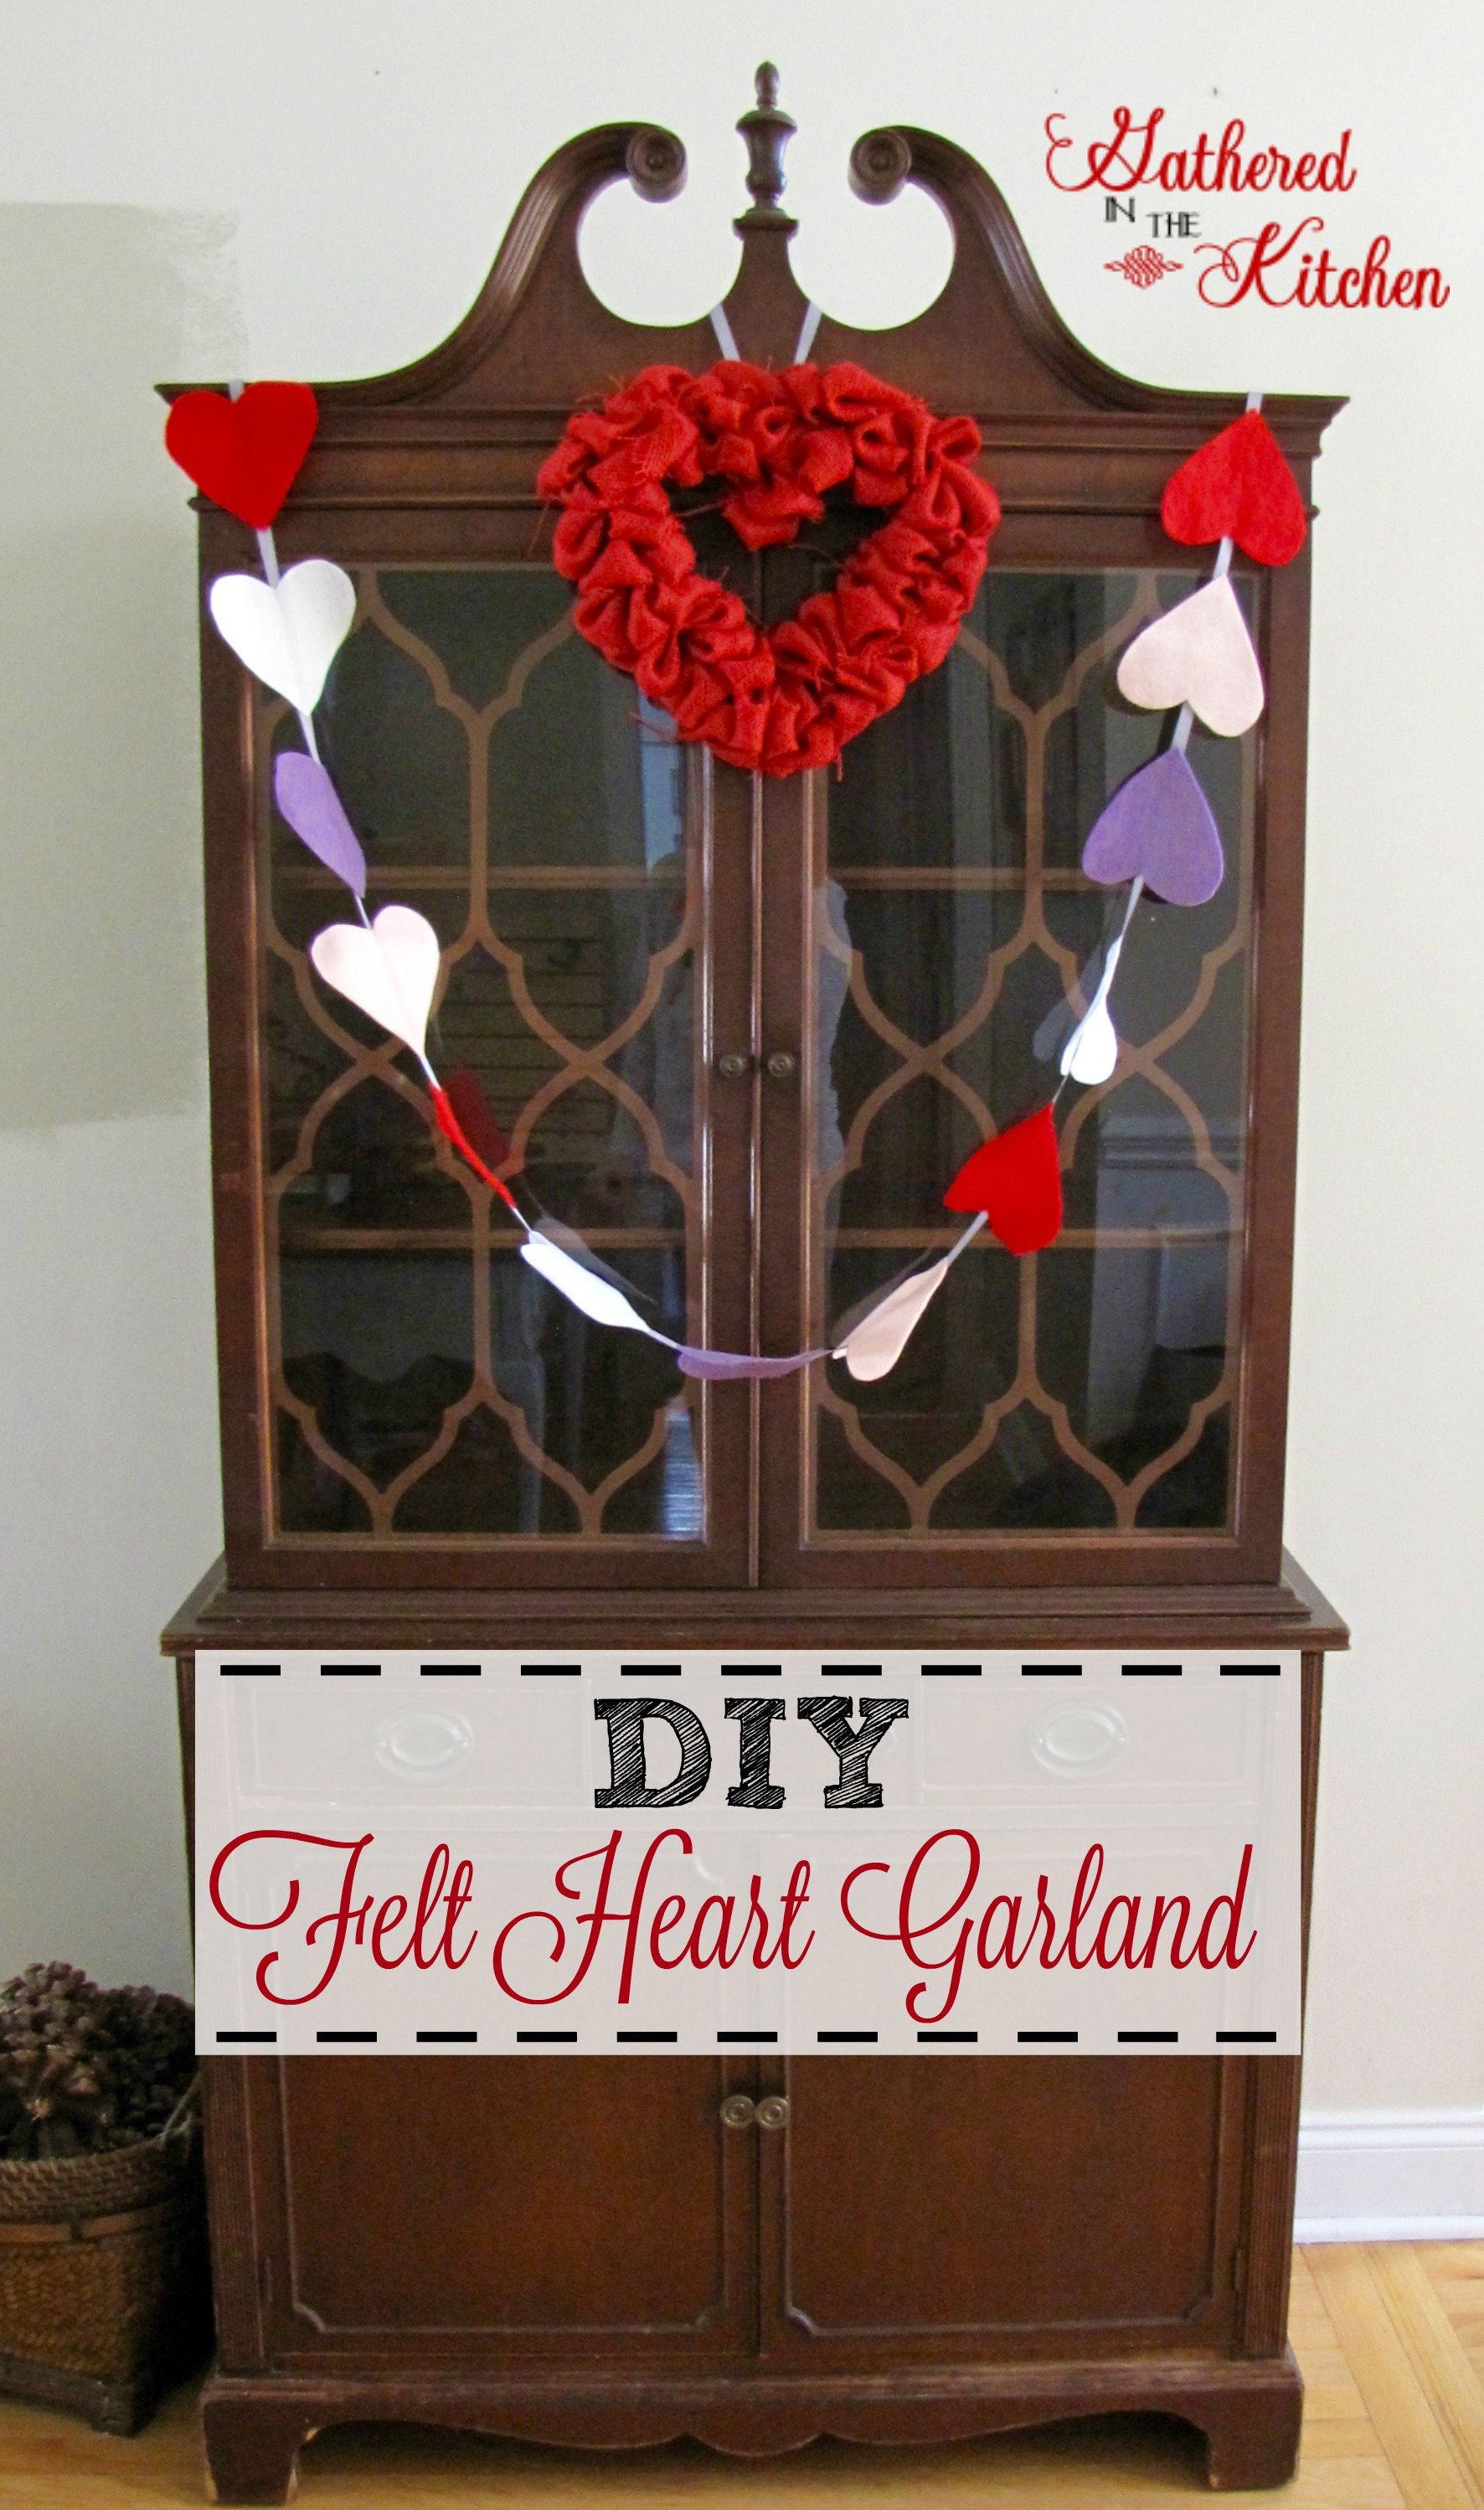 diy felt heart garland - 2